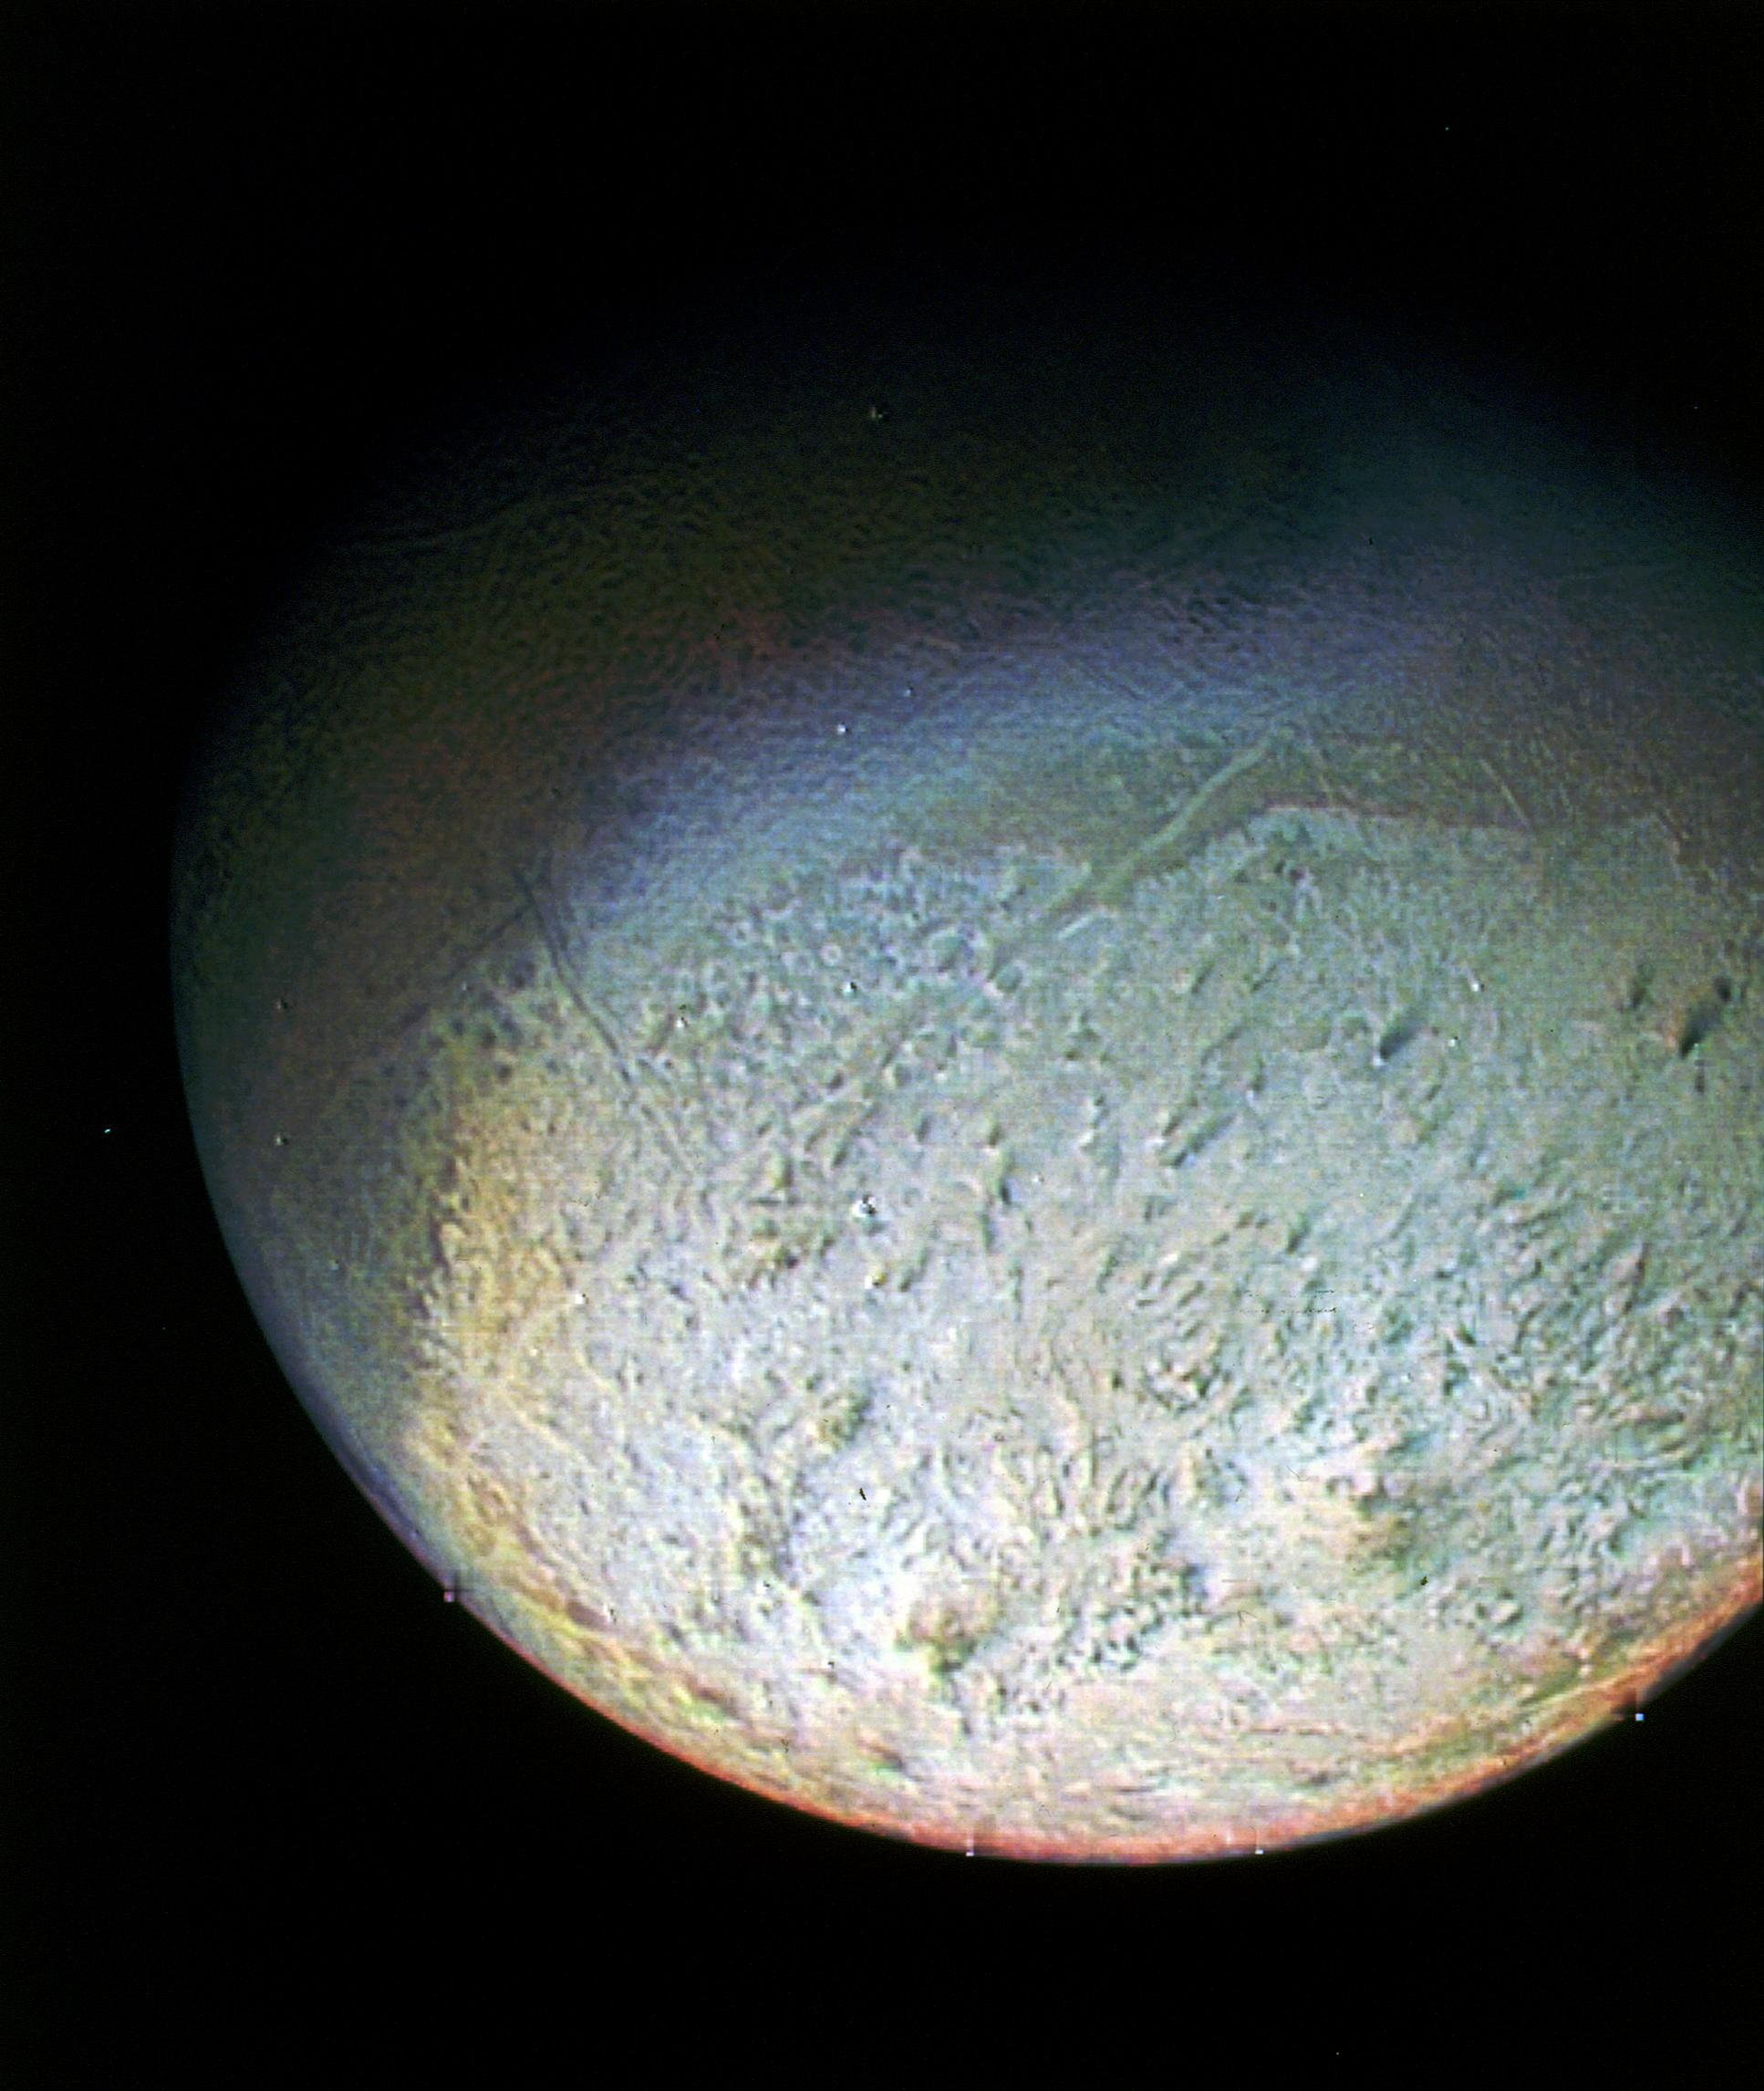 This color photo of Neptune's large satellite Triton was obtained on Aug. 24 1989 at a range of 530,000 kilometers (330,000 miles).